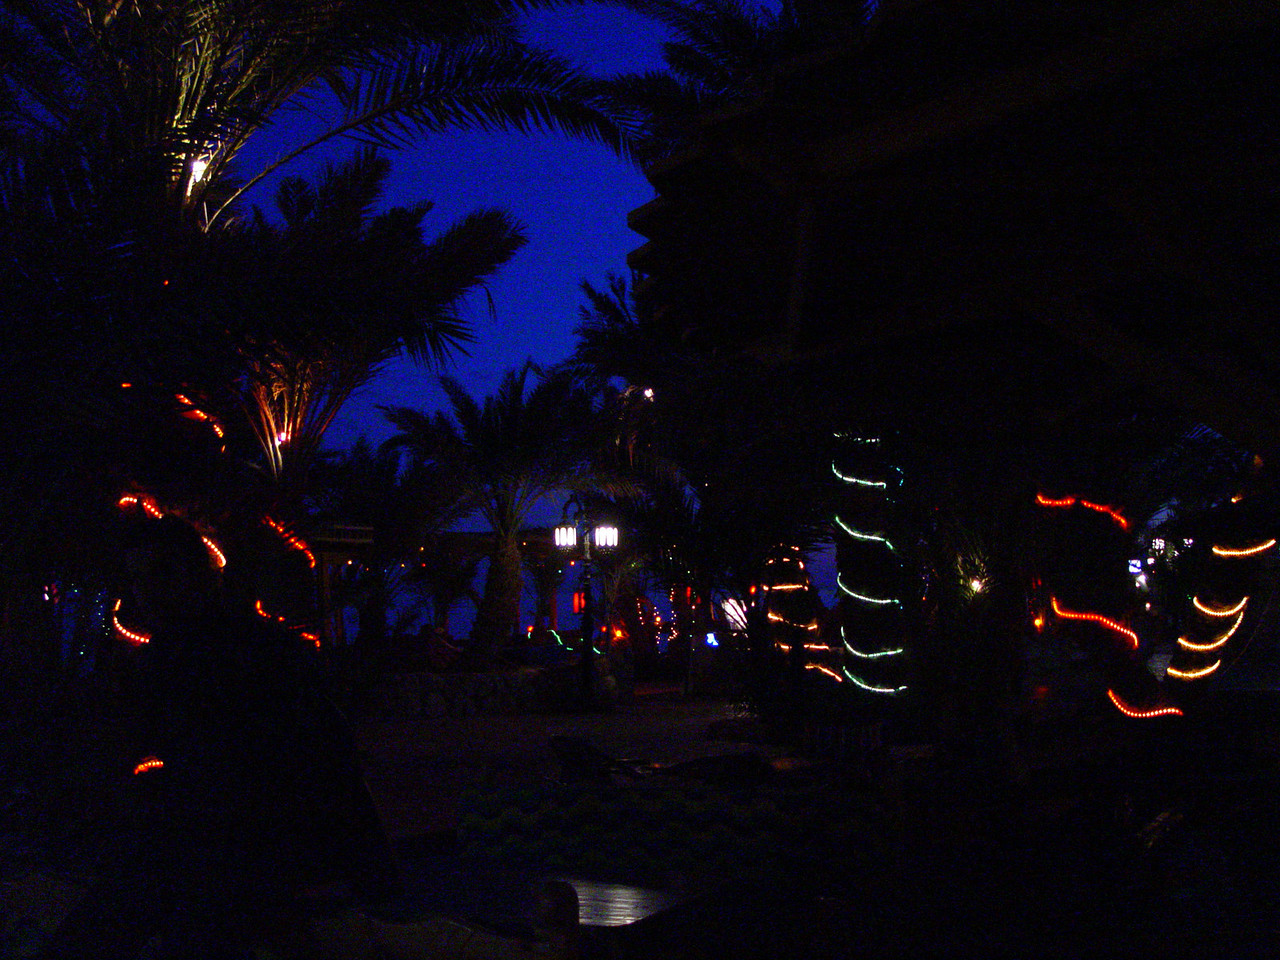 zl) Dahab beachside at night